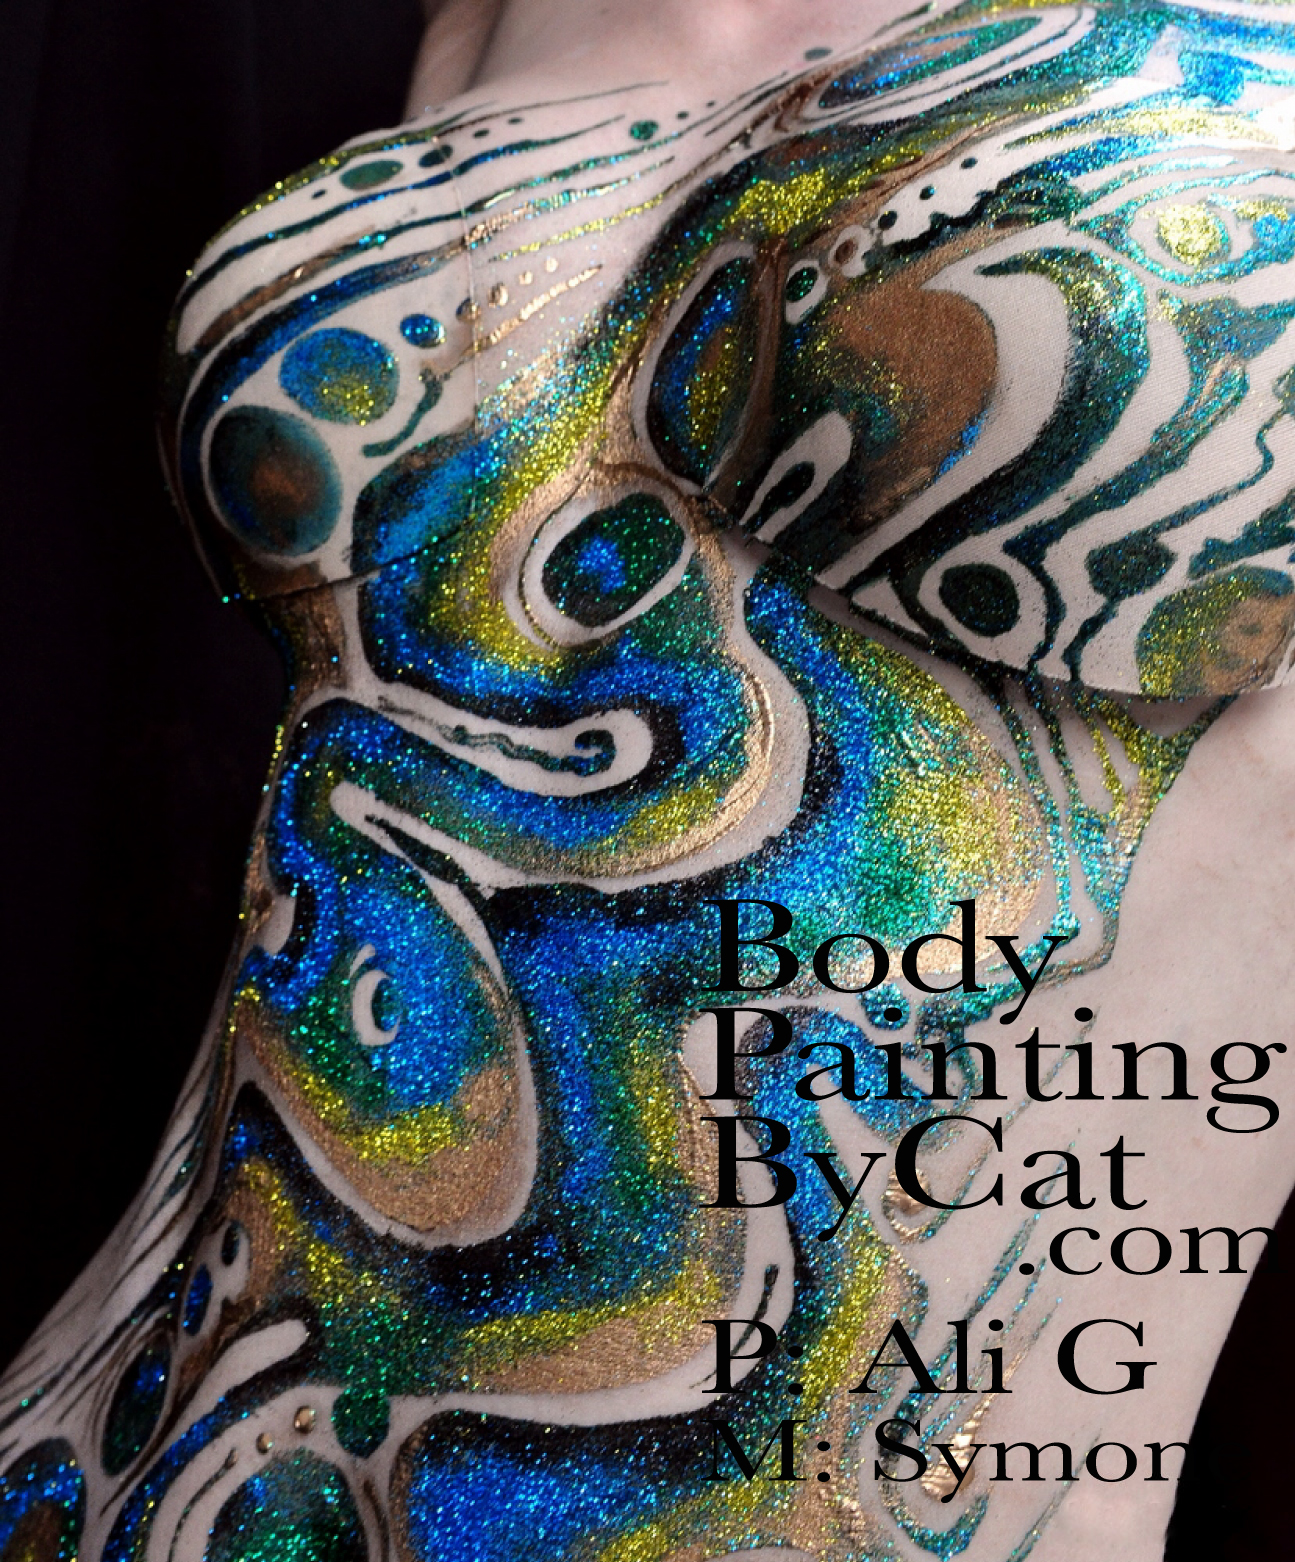 Glitter Tattoos Body Painting By Cat